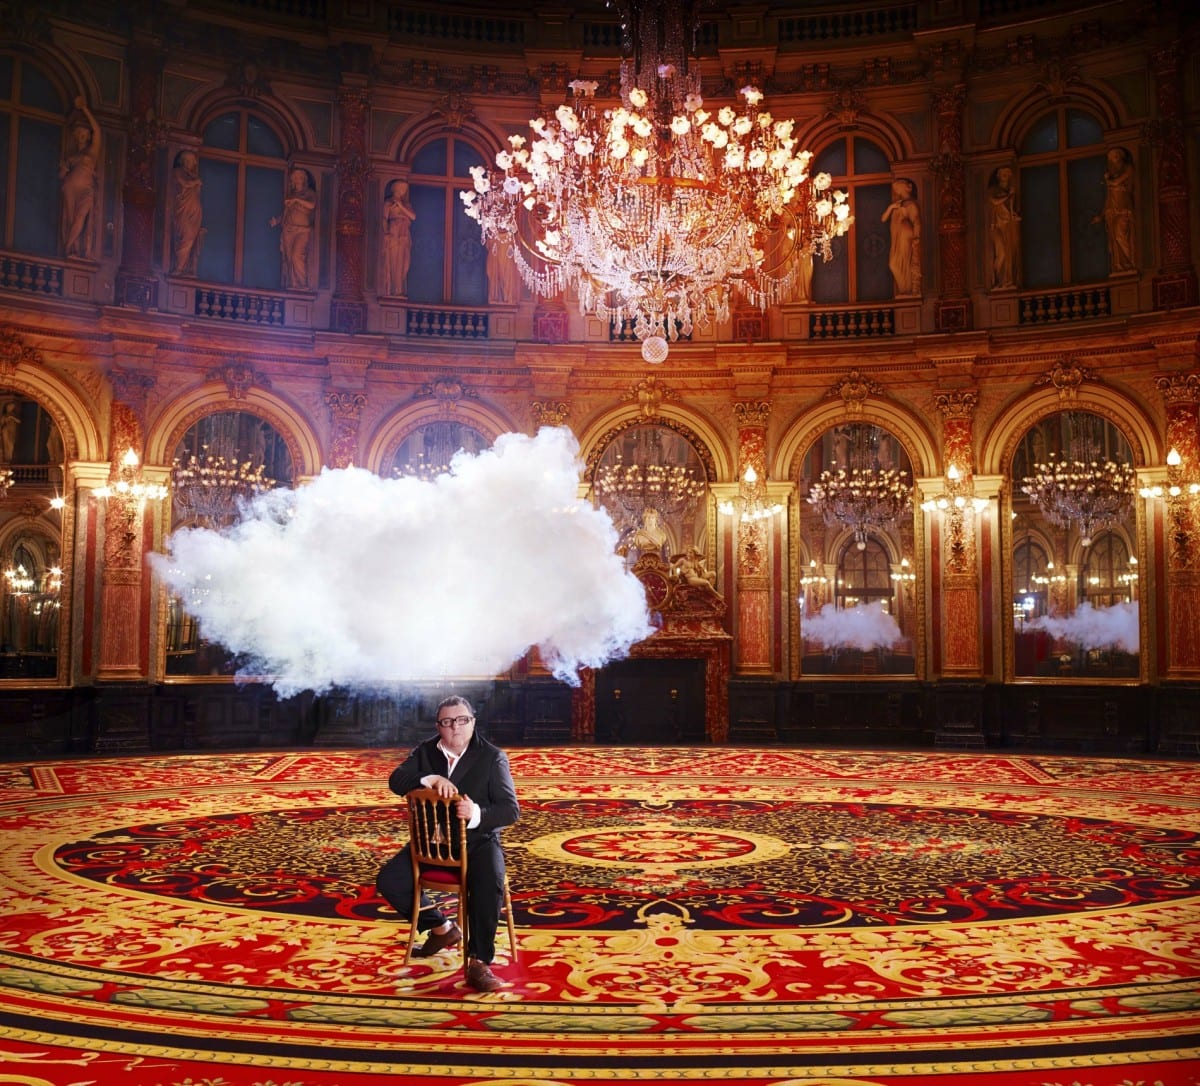 Berndnaut Smilde, The In Cloud- Alber Elbaz, 2013, courtesy of the artist, Harper's Bazaar and Ronchini Gallery.  Photo © Simon Procter